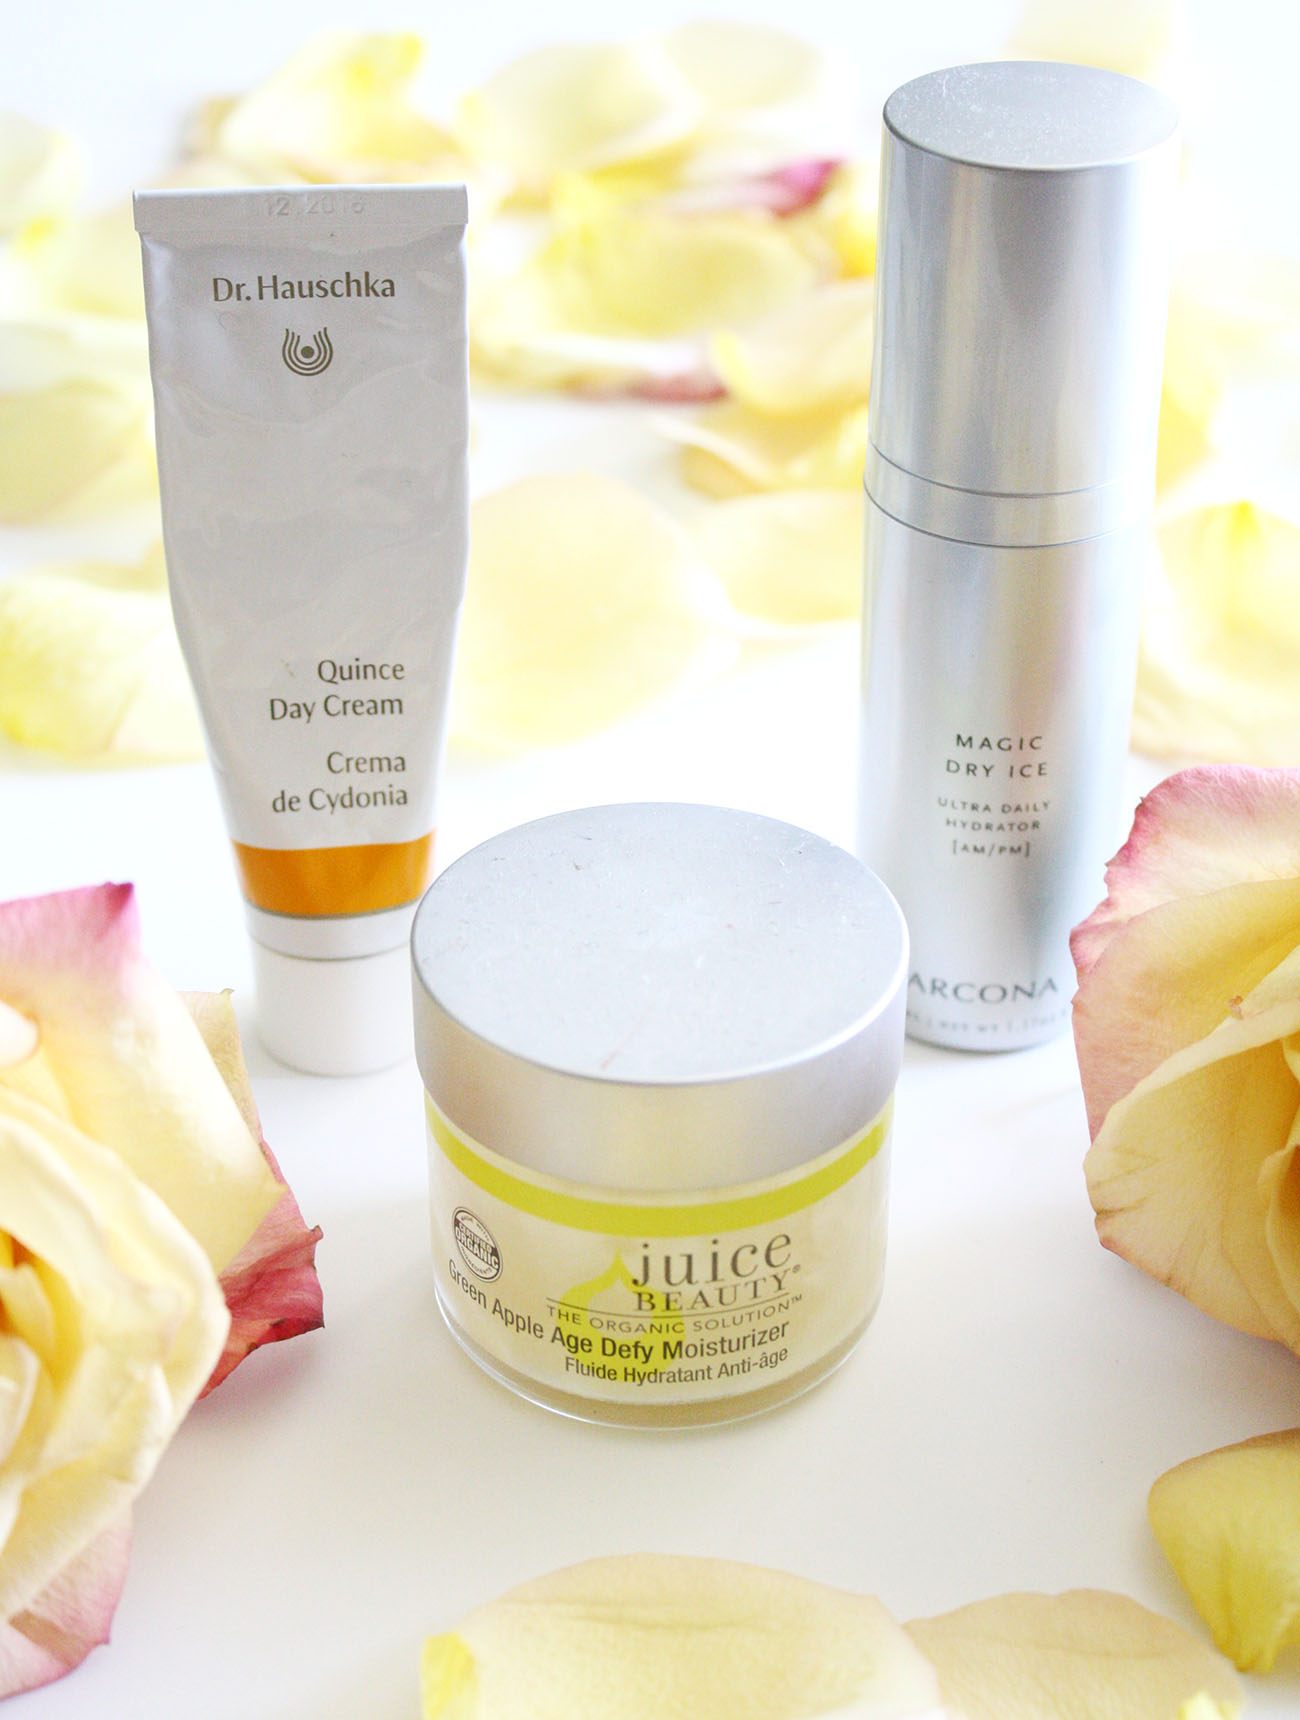 review of three face moisturizers - dr hauschka quince day cream, juice beauty green apple moisturizer, arcona magic dry ice